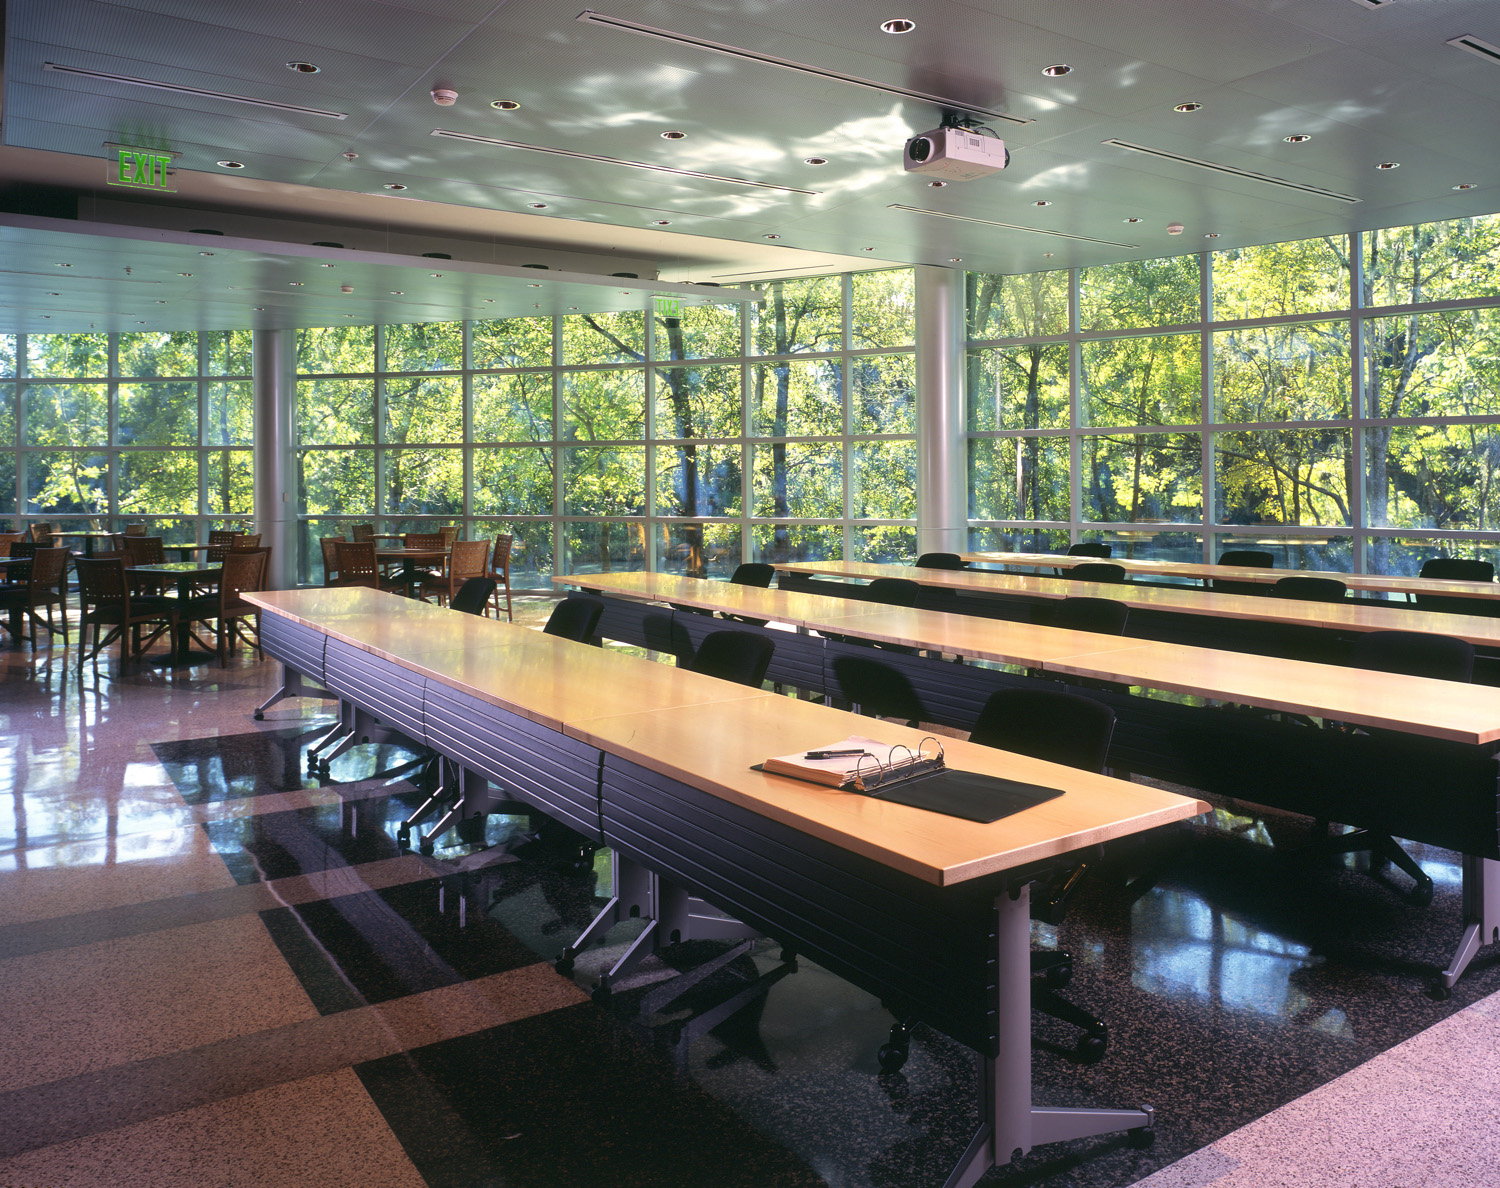 dining and ajacent room_11x17.jpg